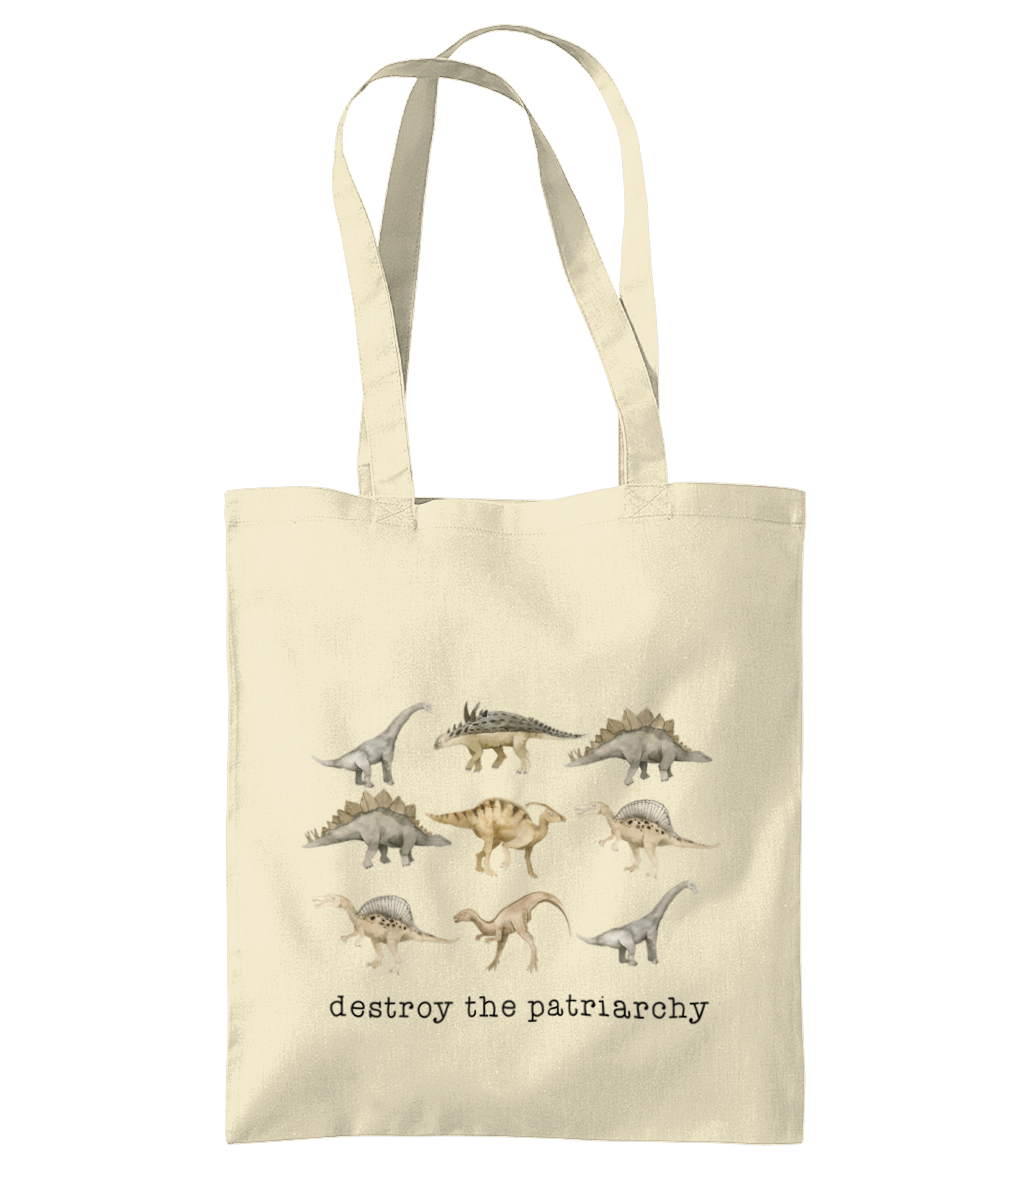 Smash the patriarchy tote bag, Tea Please